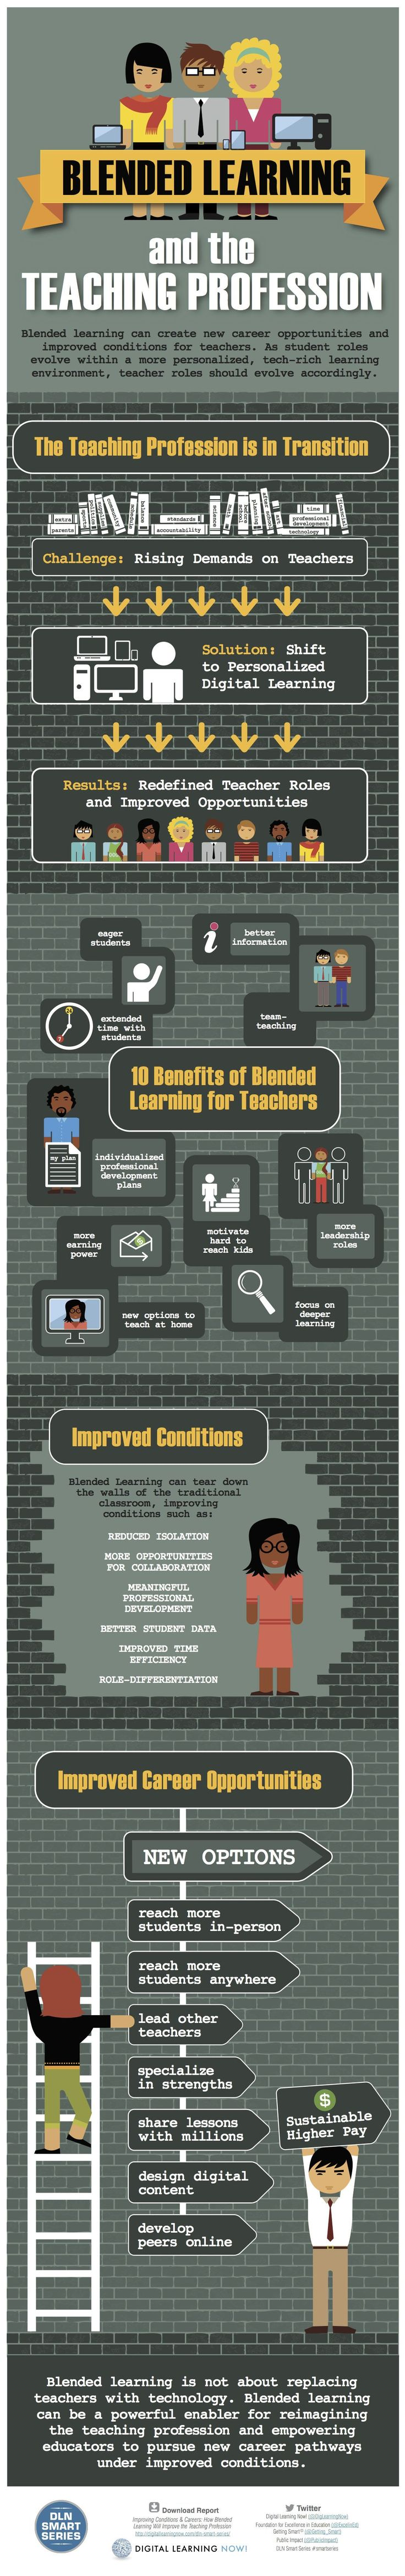 Blended Learning and the Teaching Profession [Infographic]